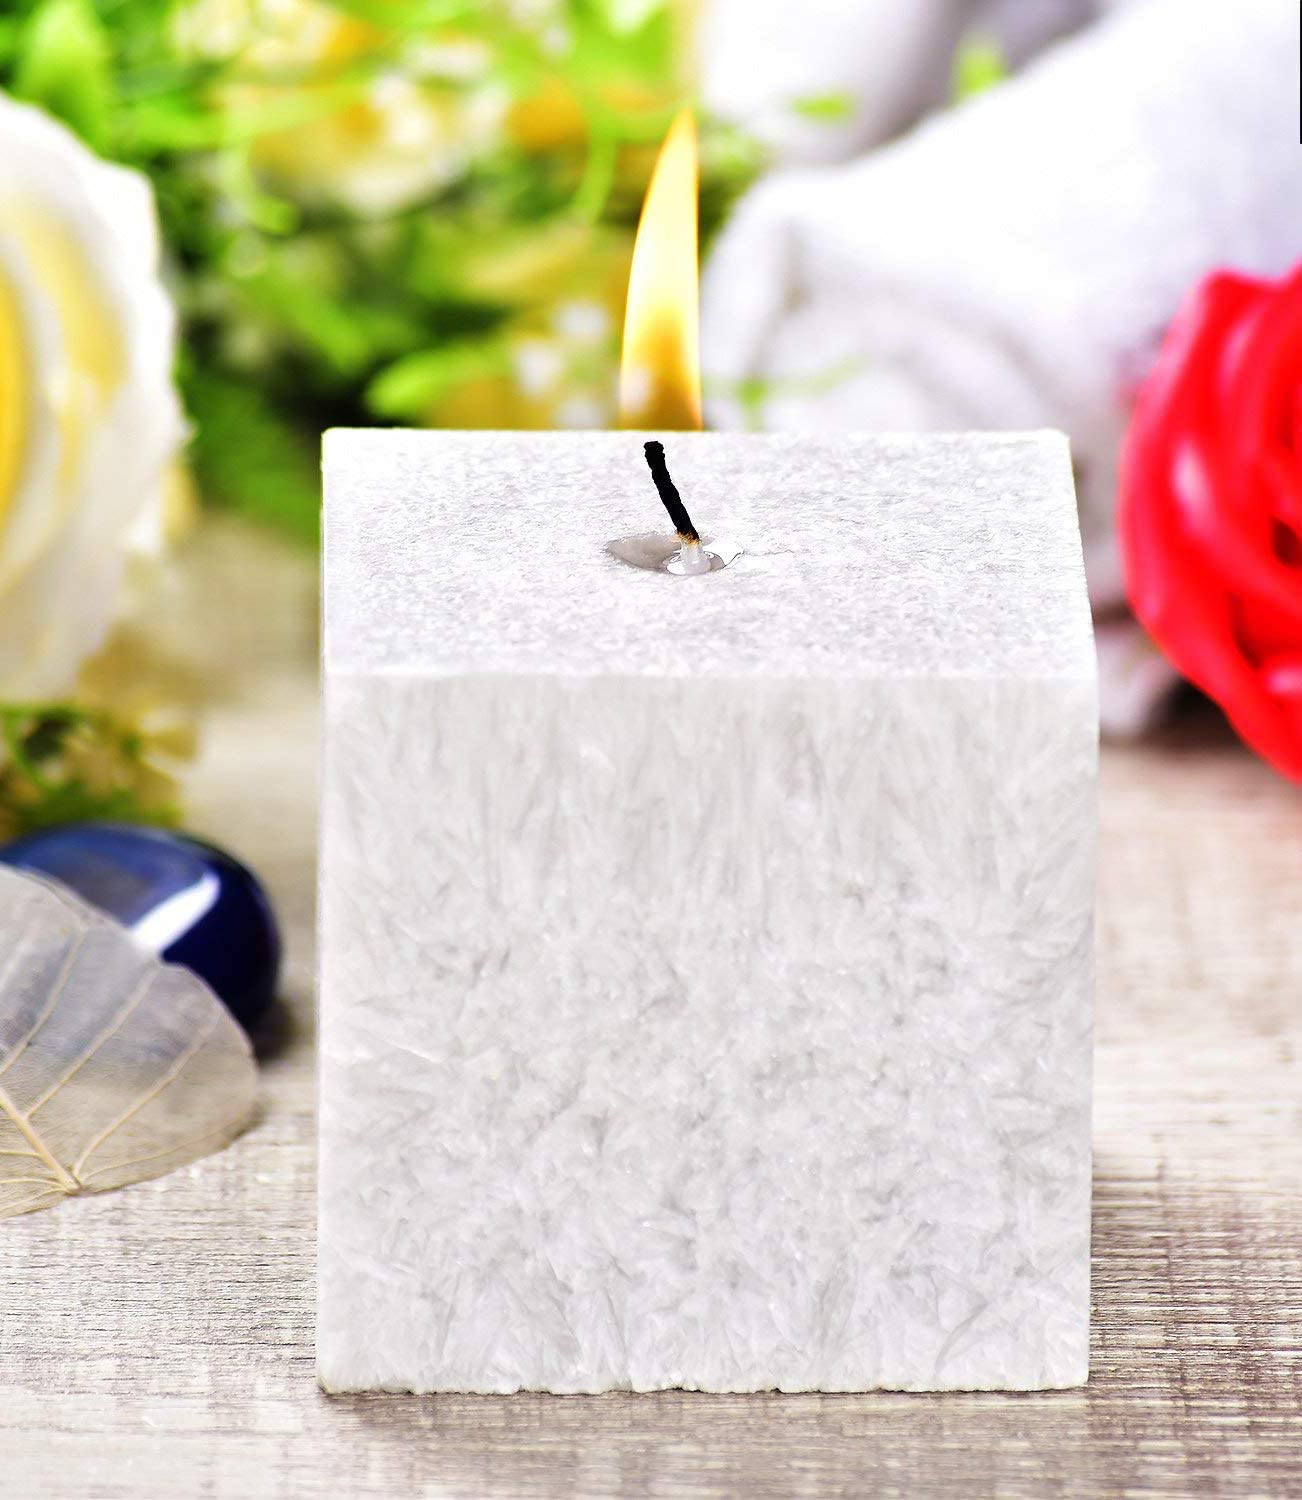 Spiritual World Aromatic Fragrance Candle Home Decor Room A Max 86% OFF for Super sale